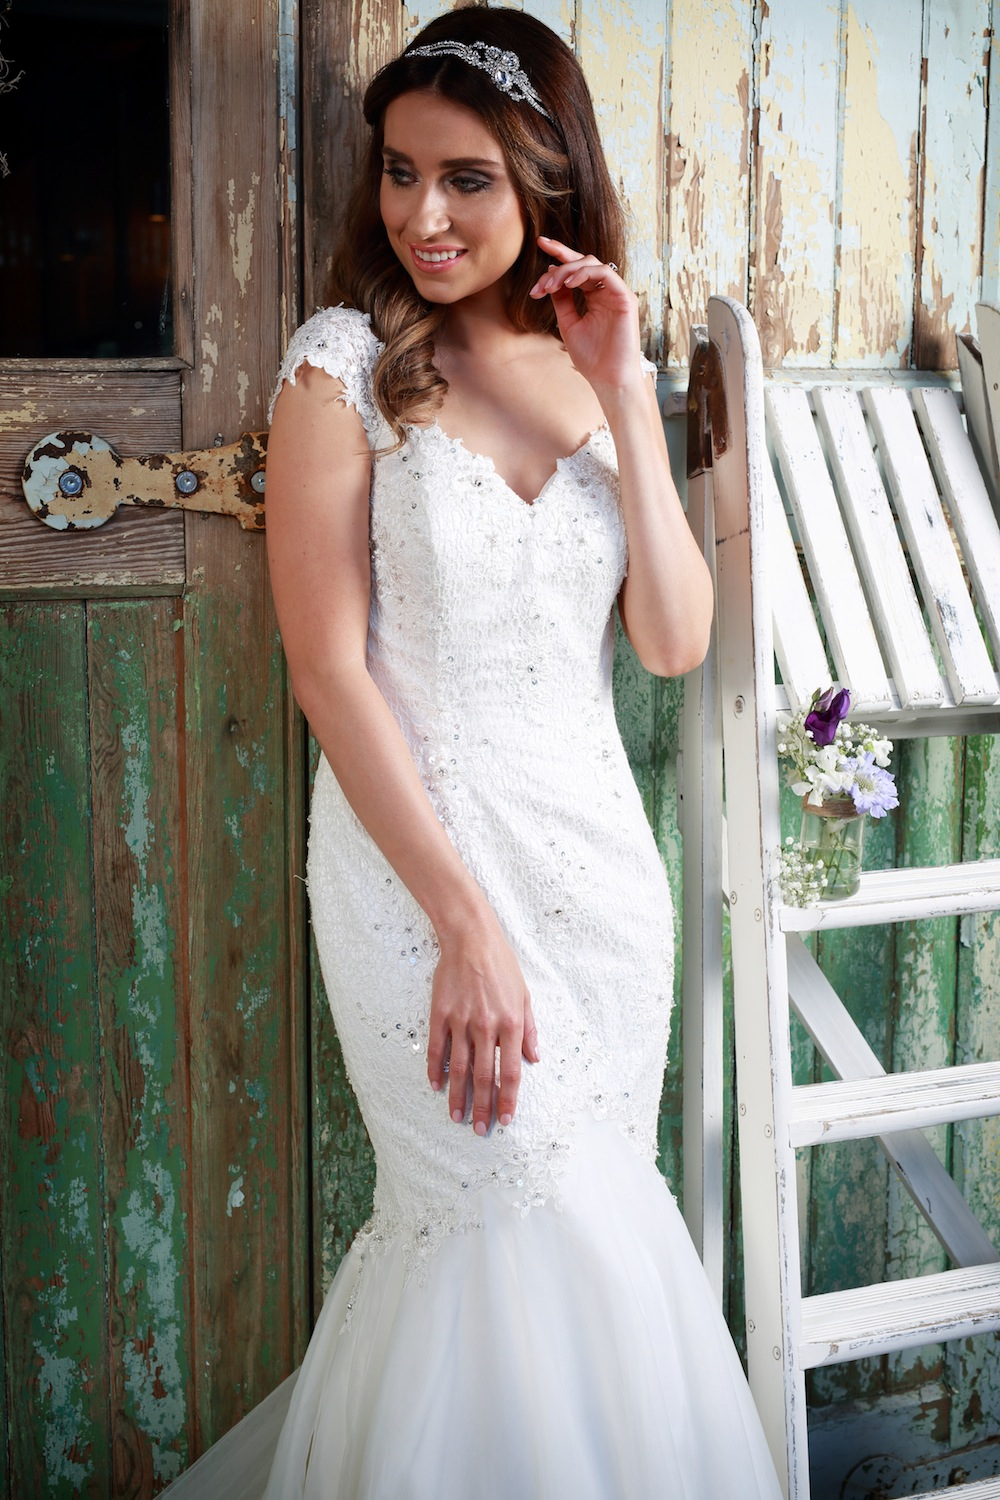 Amanda Wyatt Wedding Gown : Paislee - figure hugging dress in lace with a train that will leave your guests gasping